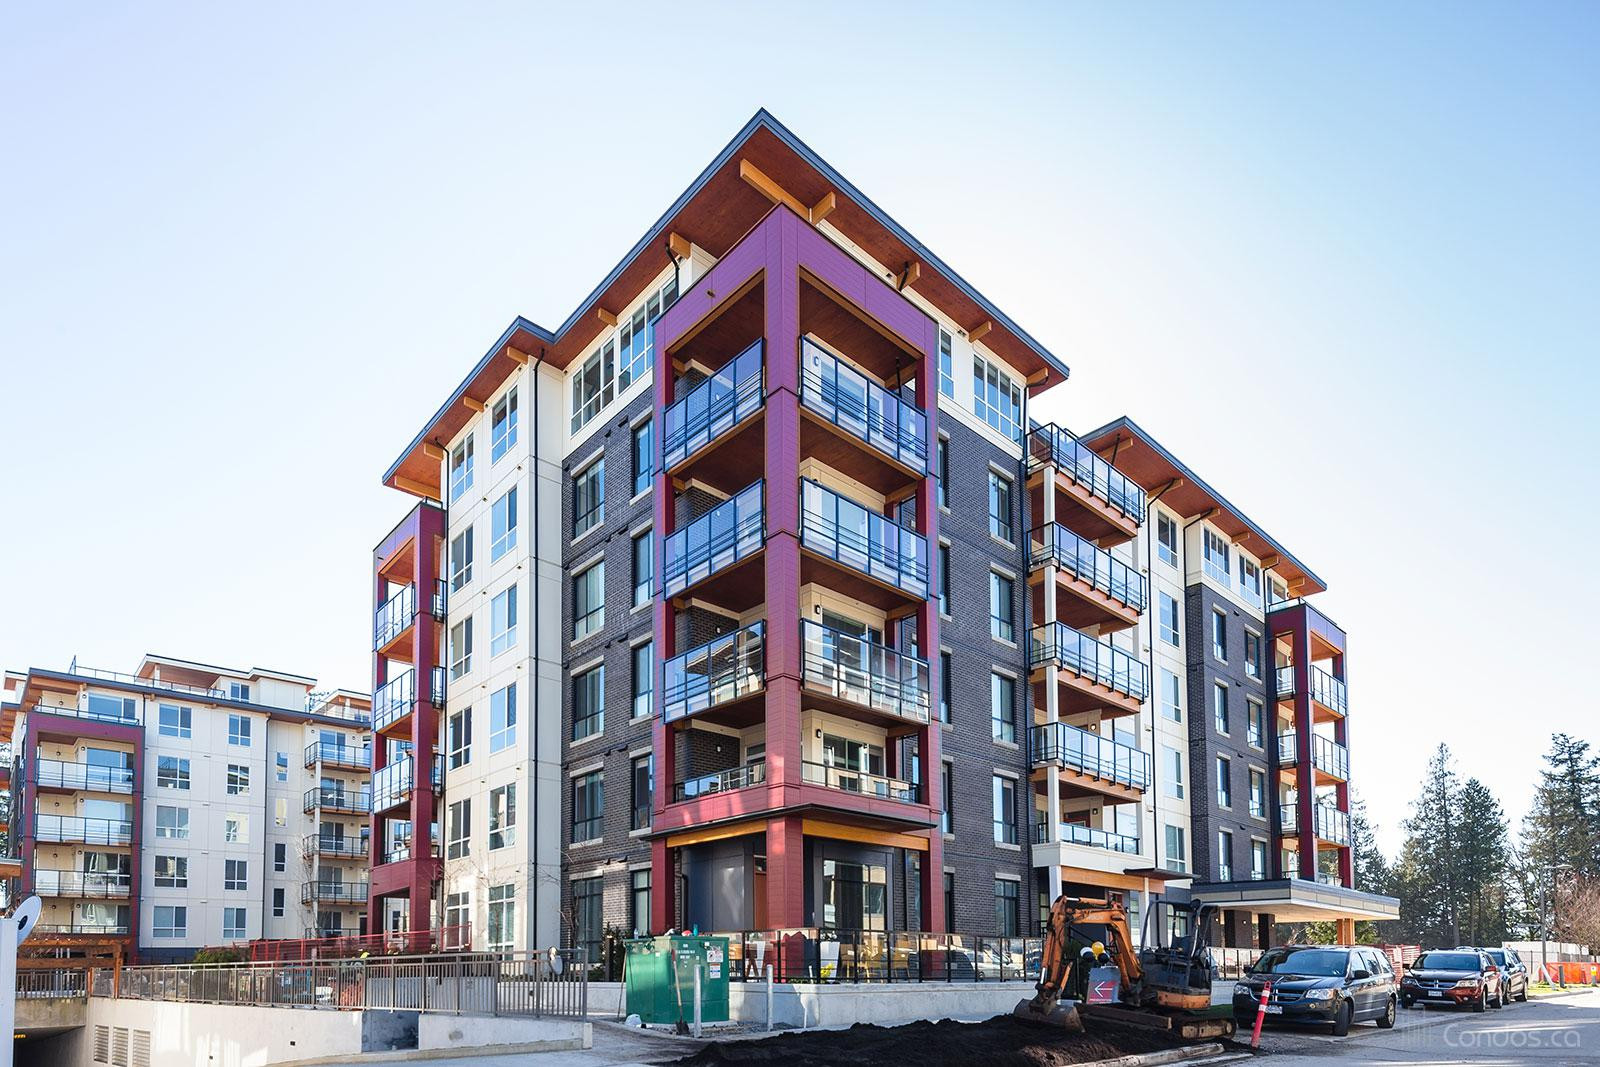 Virtuoso at 3581 Ross Drive, Vancouver 1